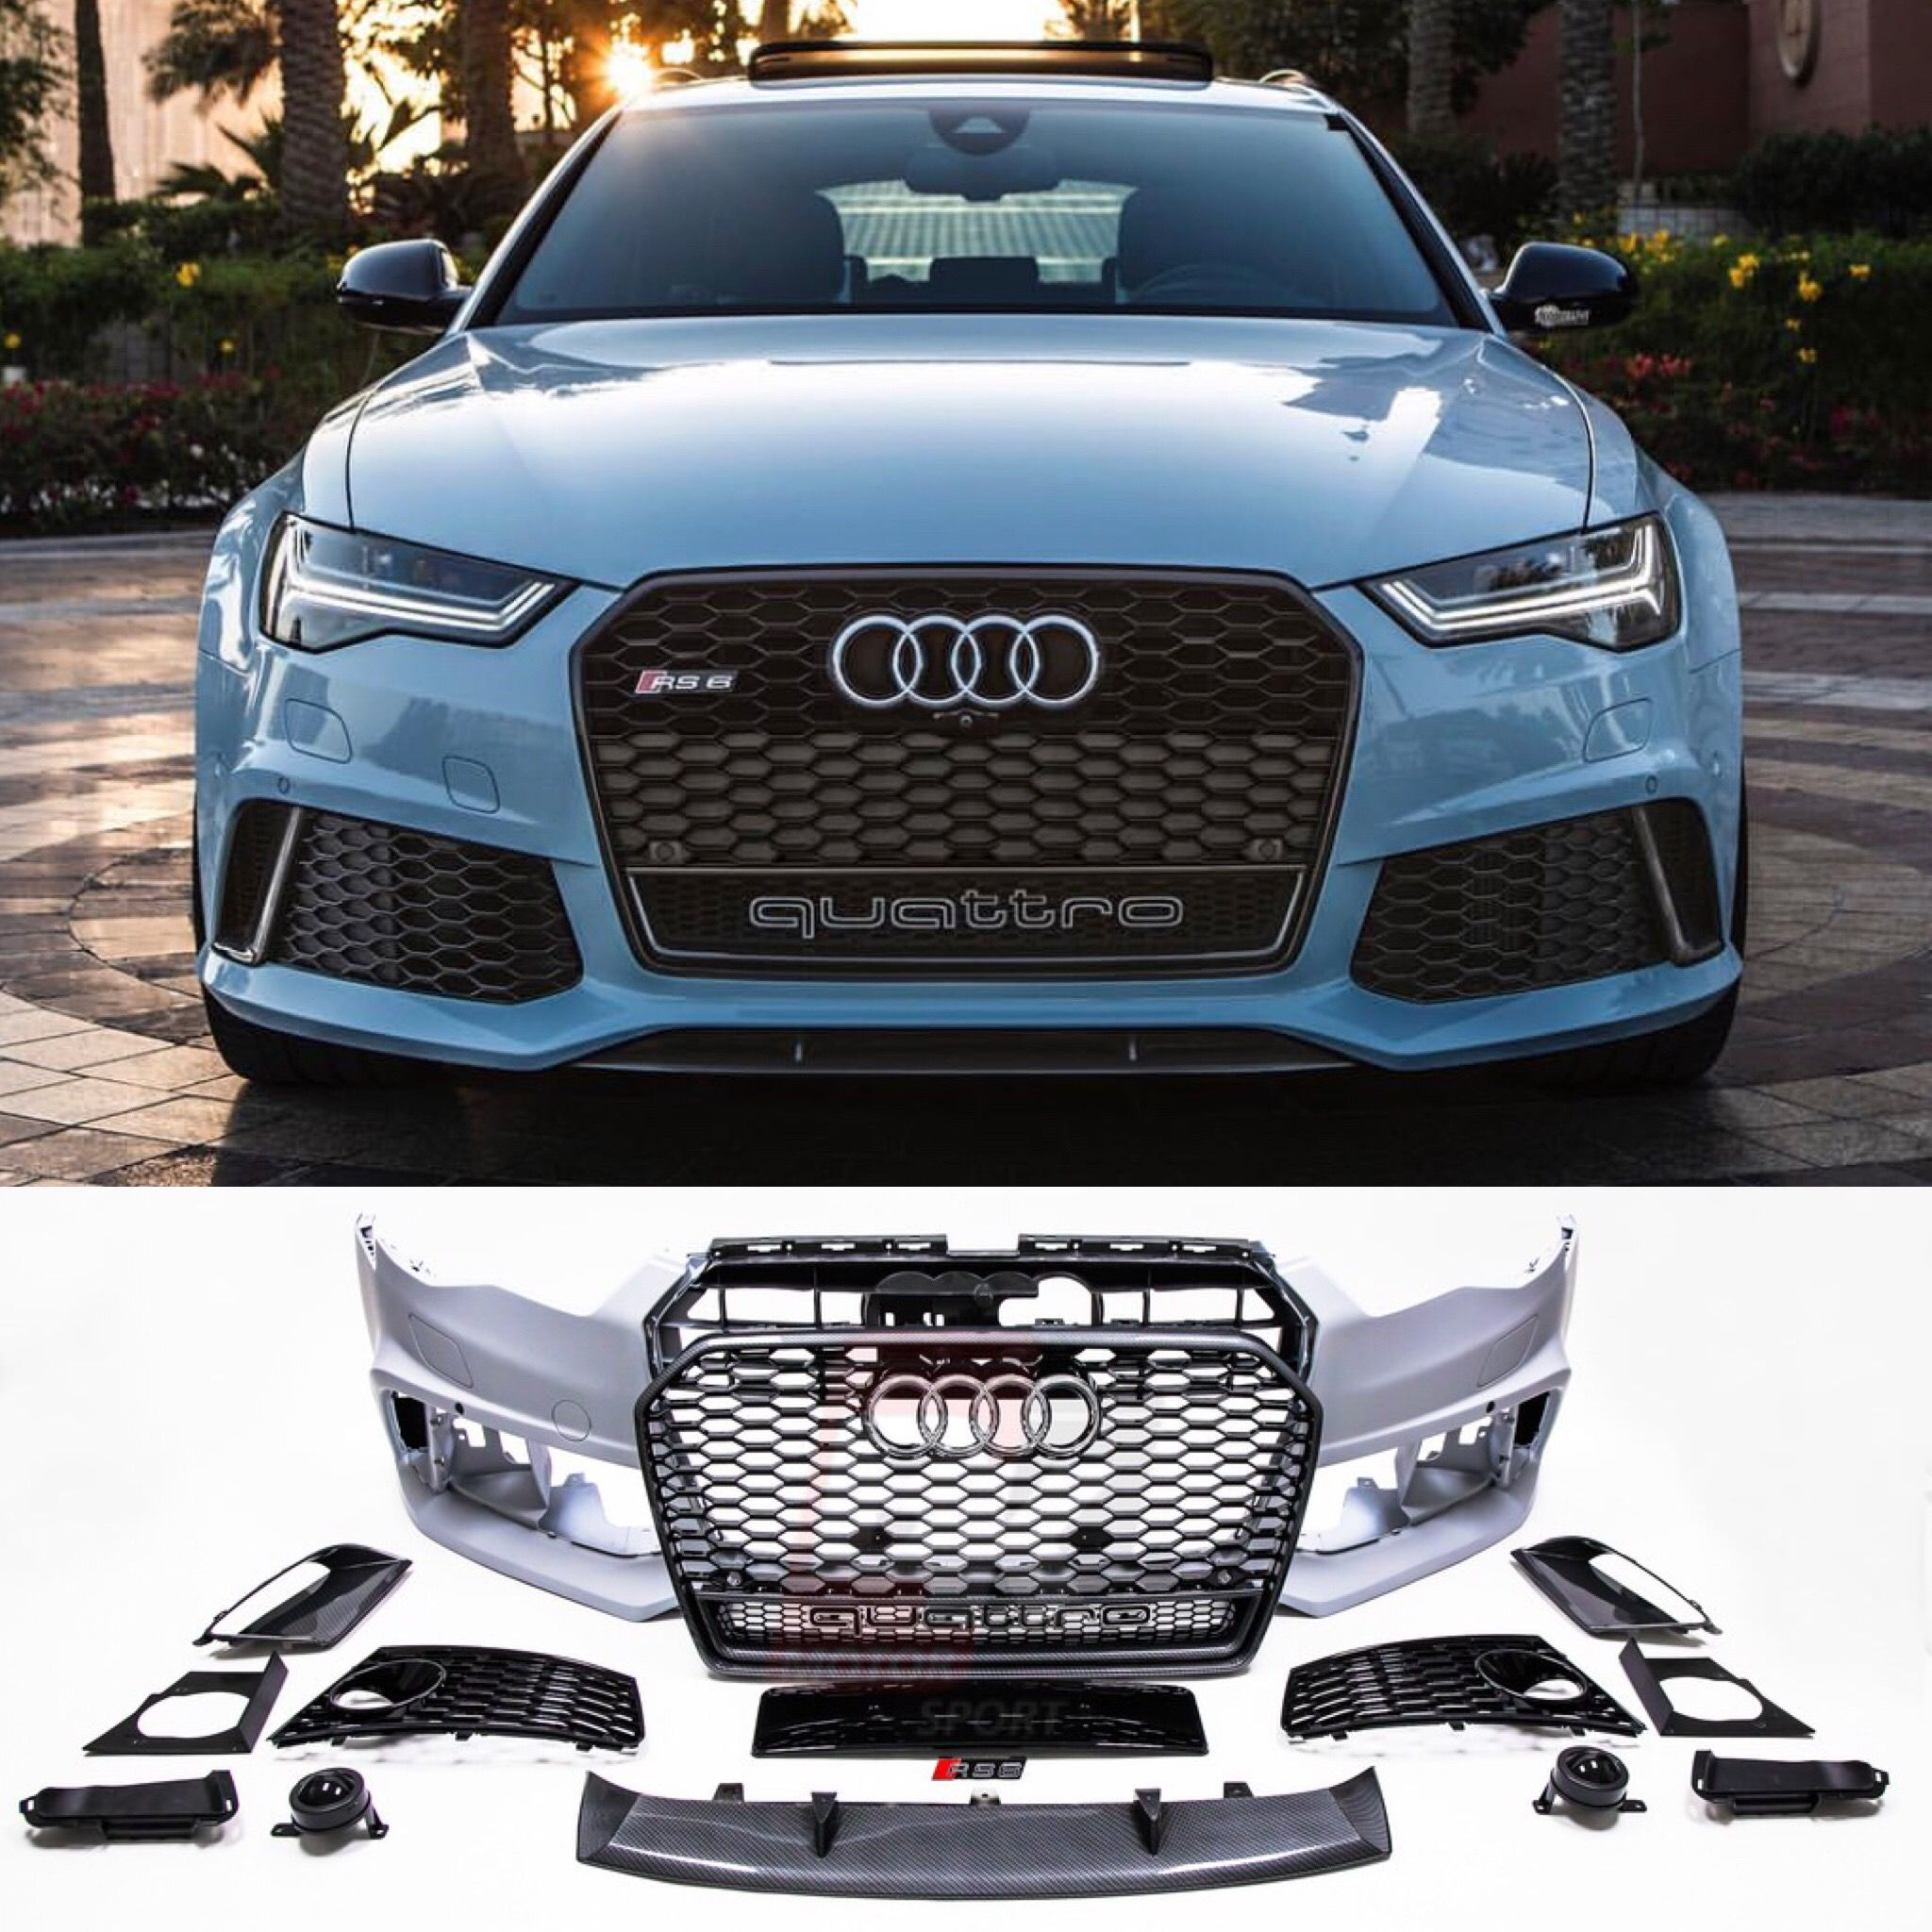 BKM Front Bumper Kit with Front Grille (RS Style - Carbon